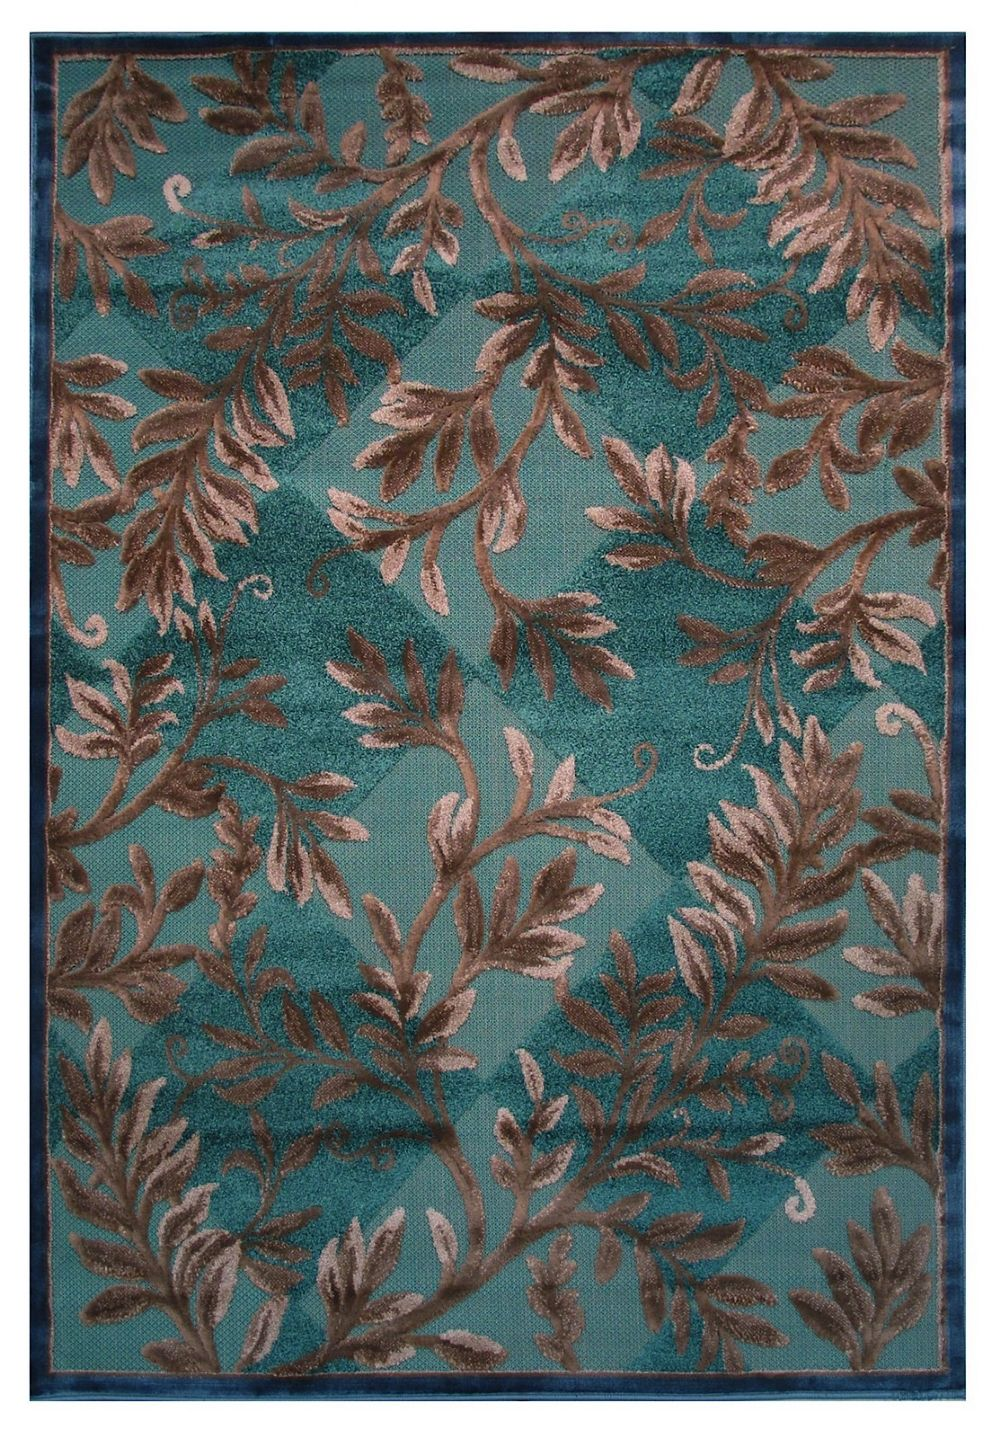 la rugs vintage country & floral area rug collection